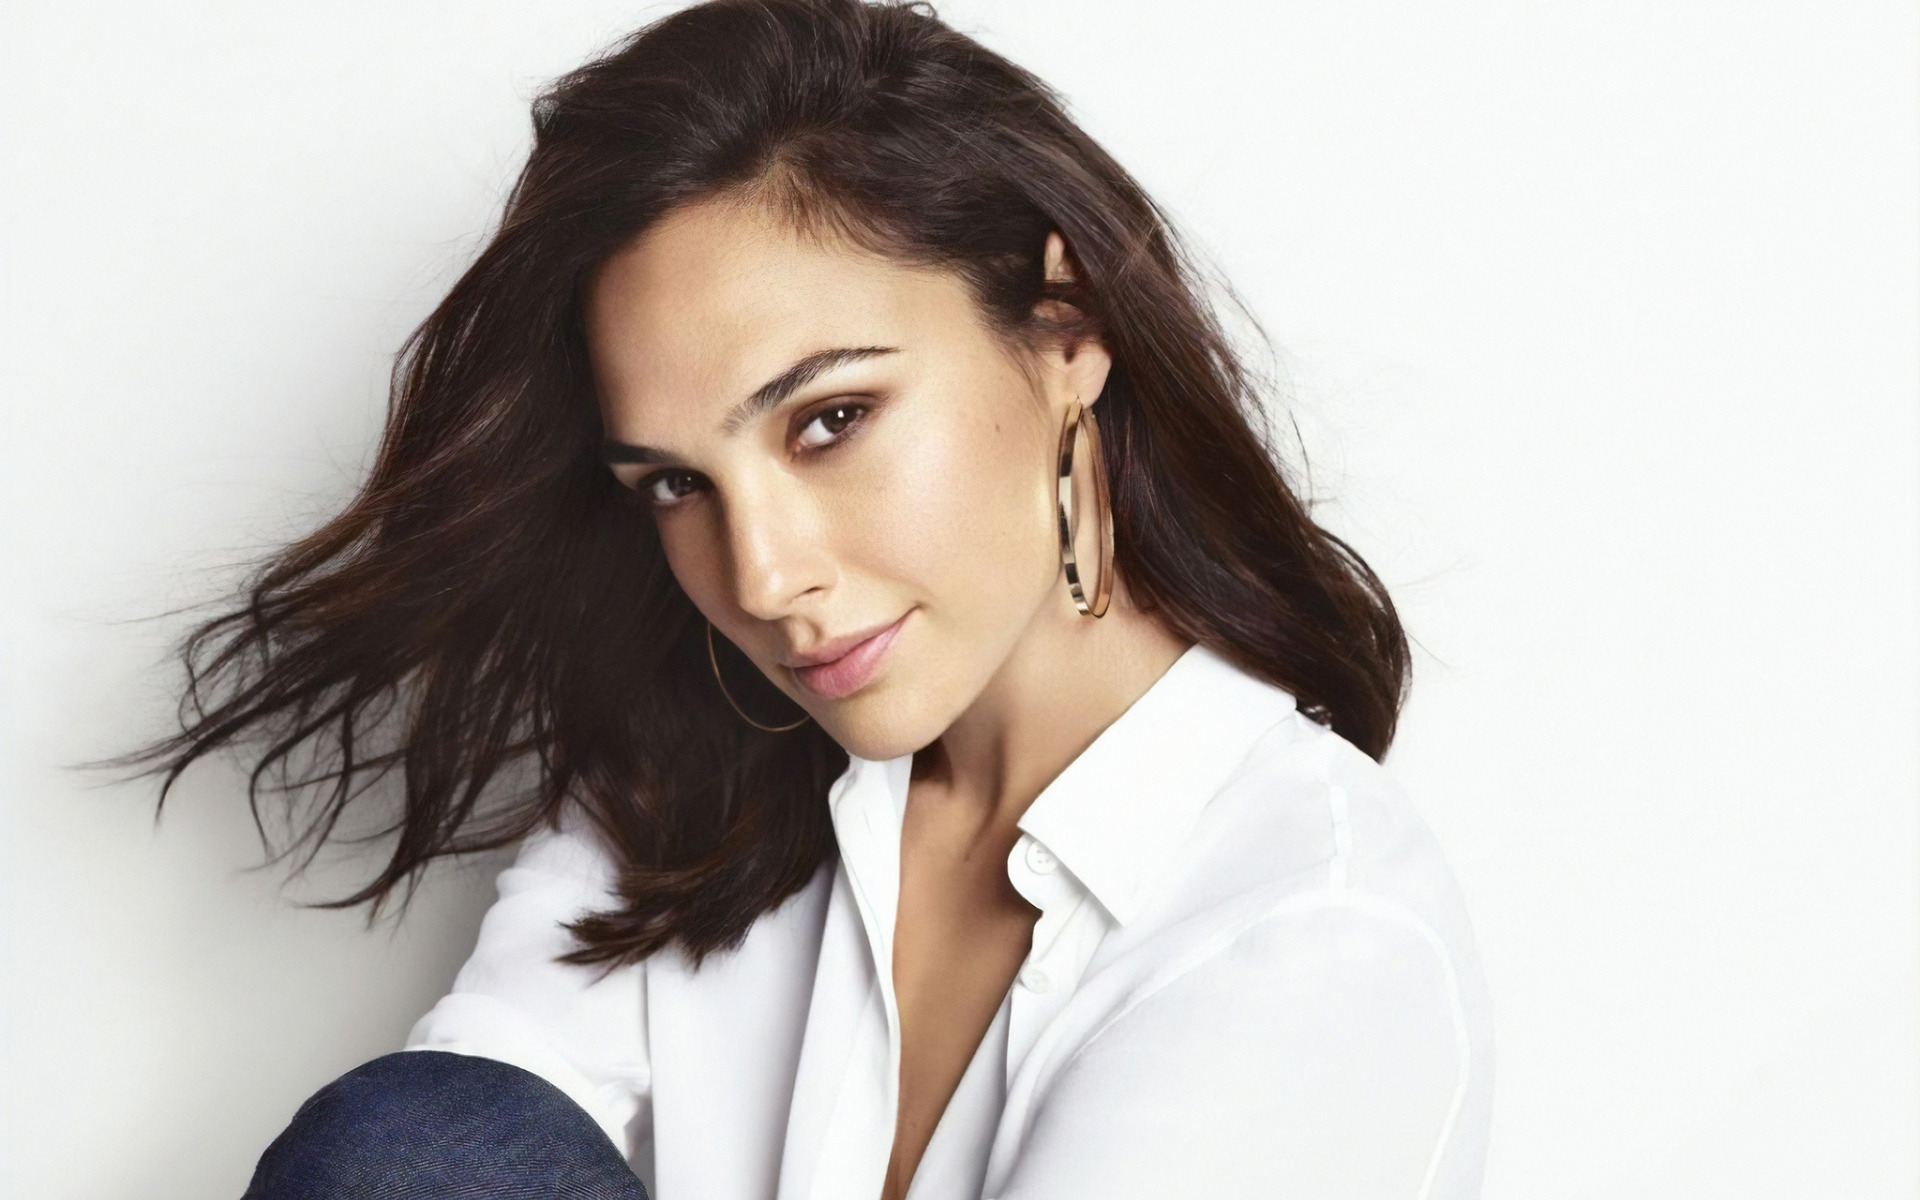 Gal Gadot, portrait, sorriso, photoshoot, Israeliano attrice, star di Hollywood, attrici famose